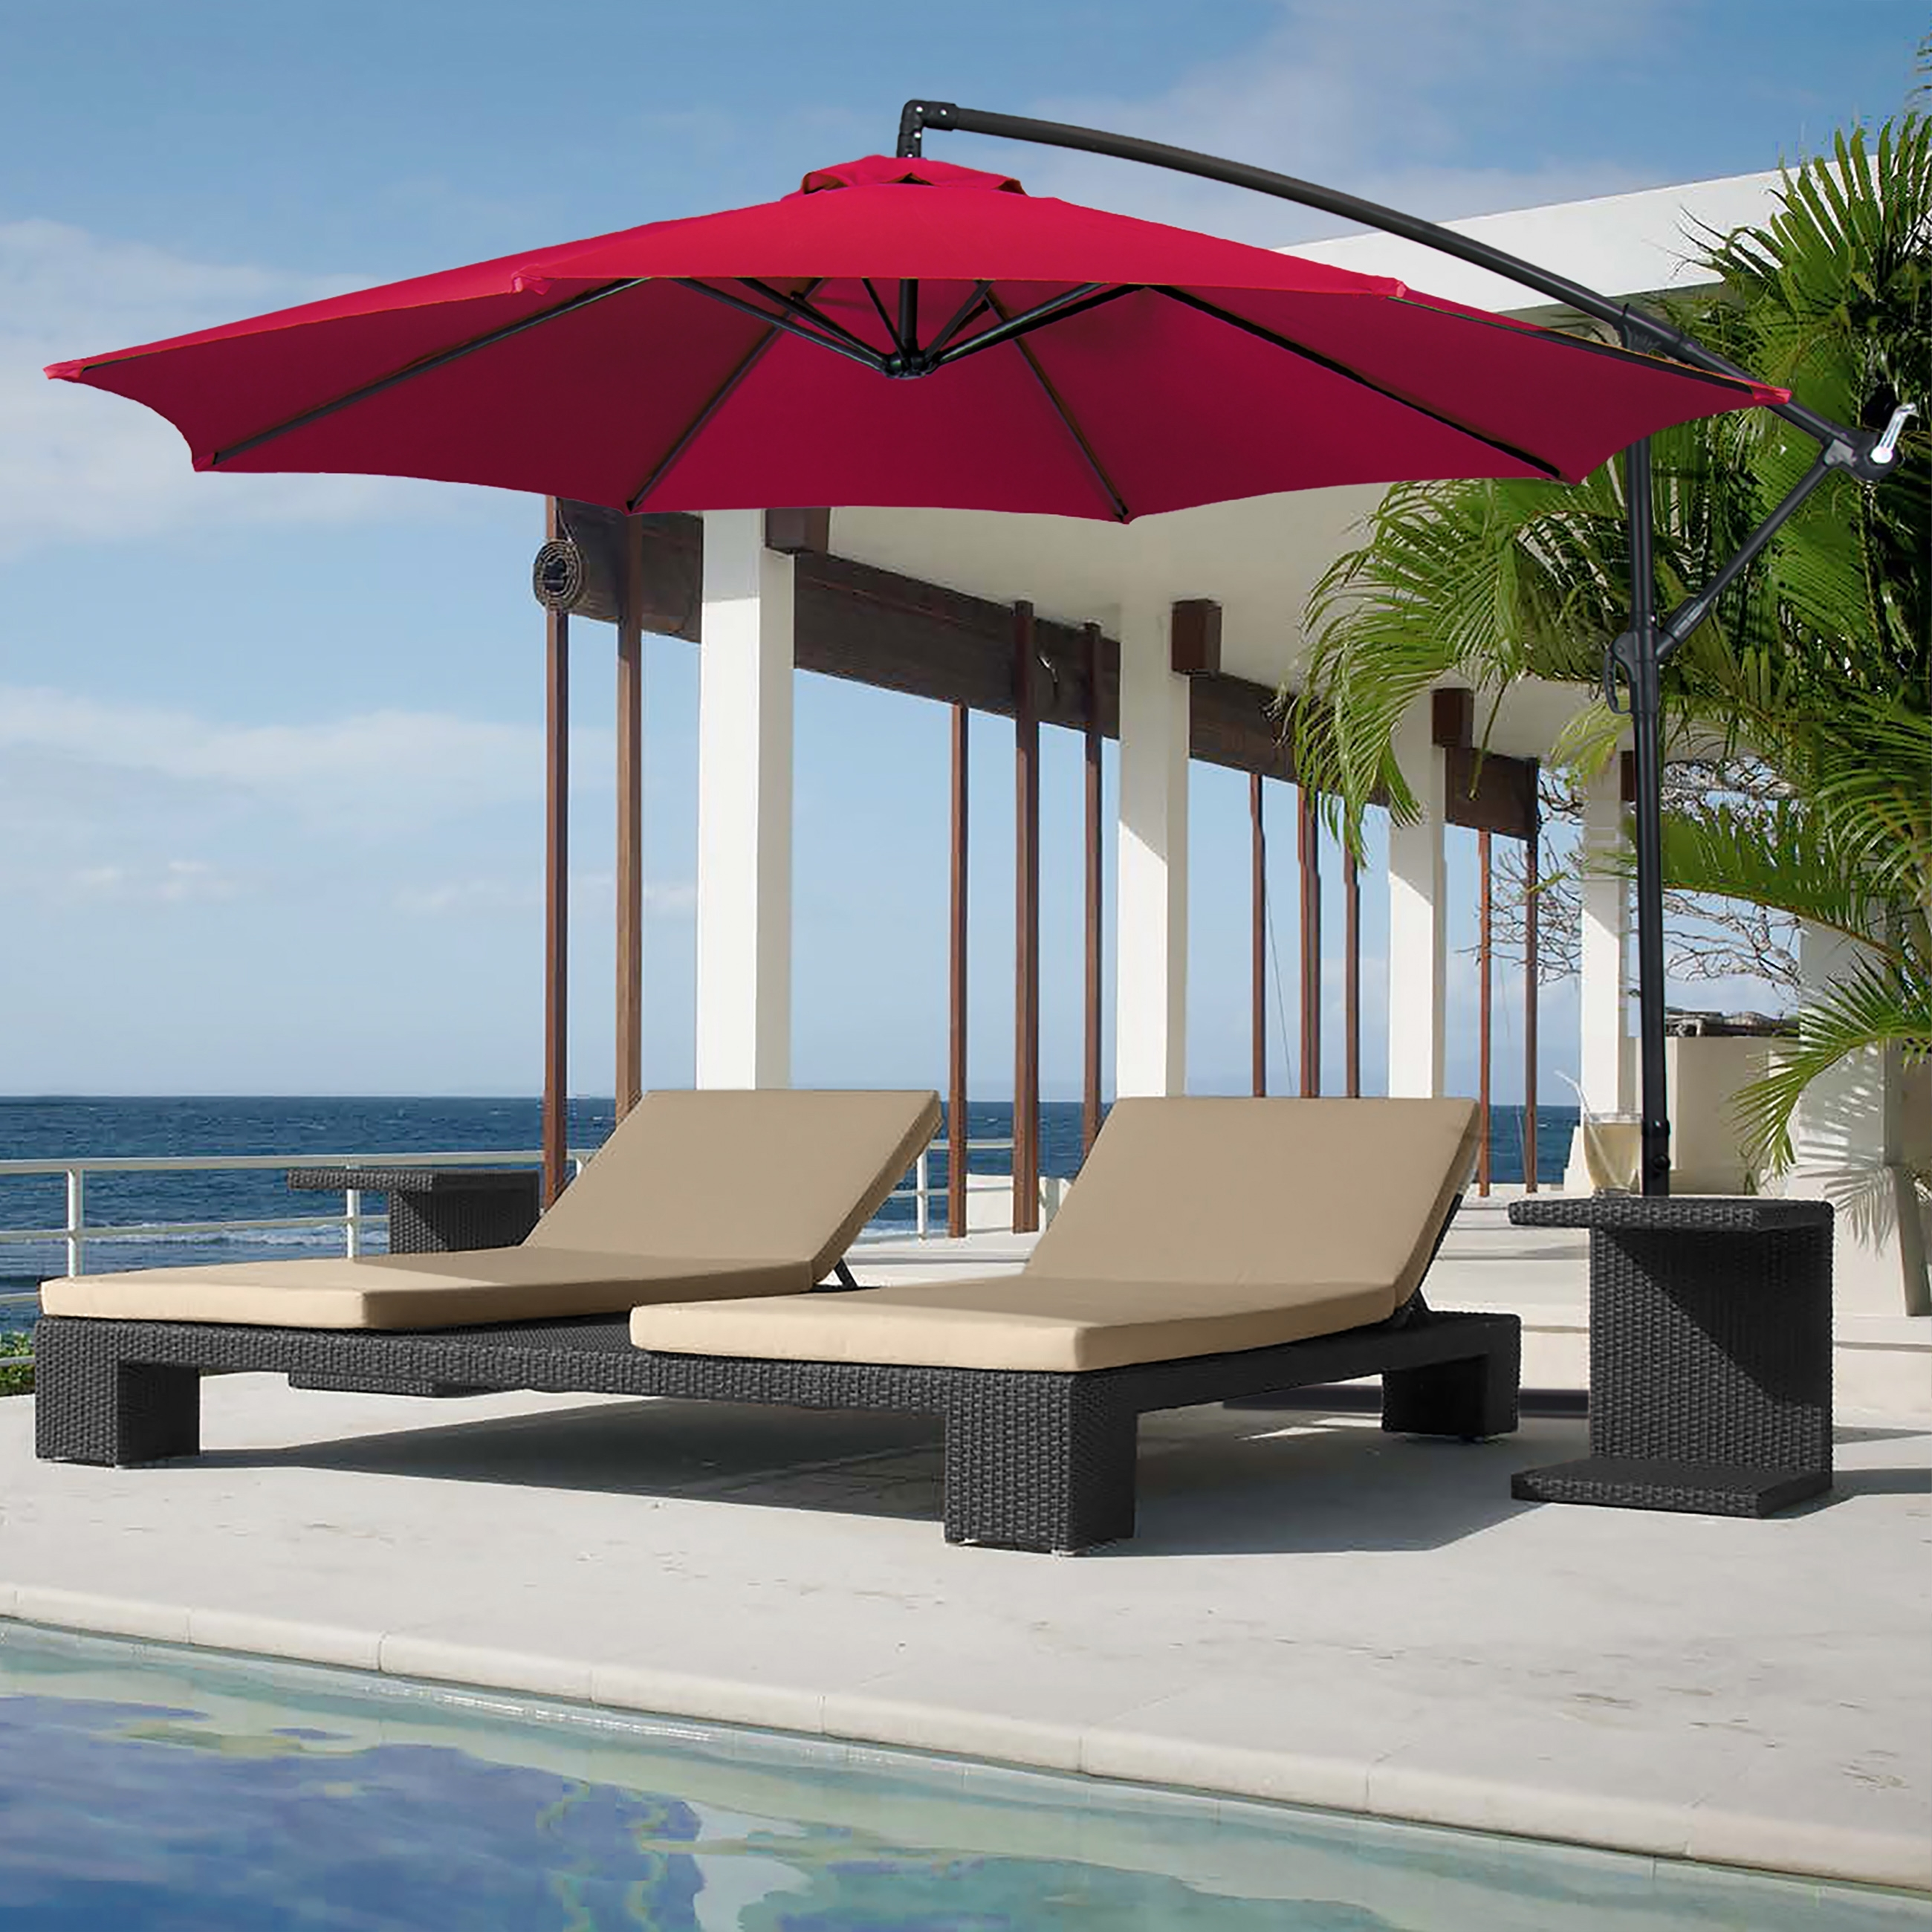 Popular Enjoy In The Shade Of Patio Umbrella Throughout The Day Within Hanging Patio Umbrellas (View 14 of 20)